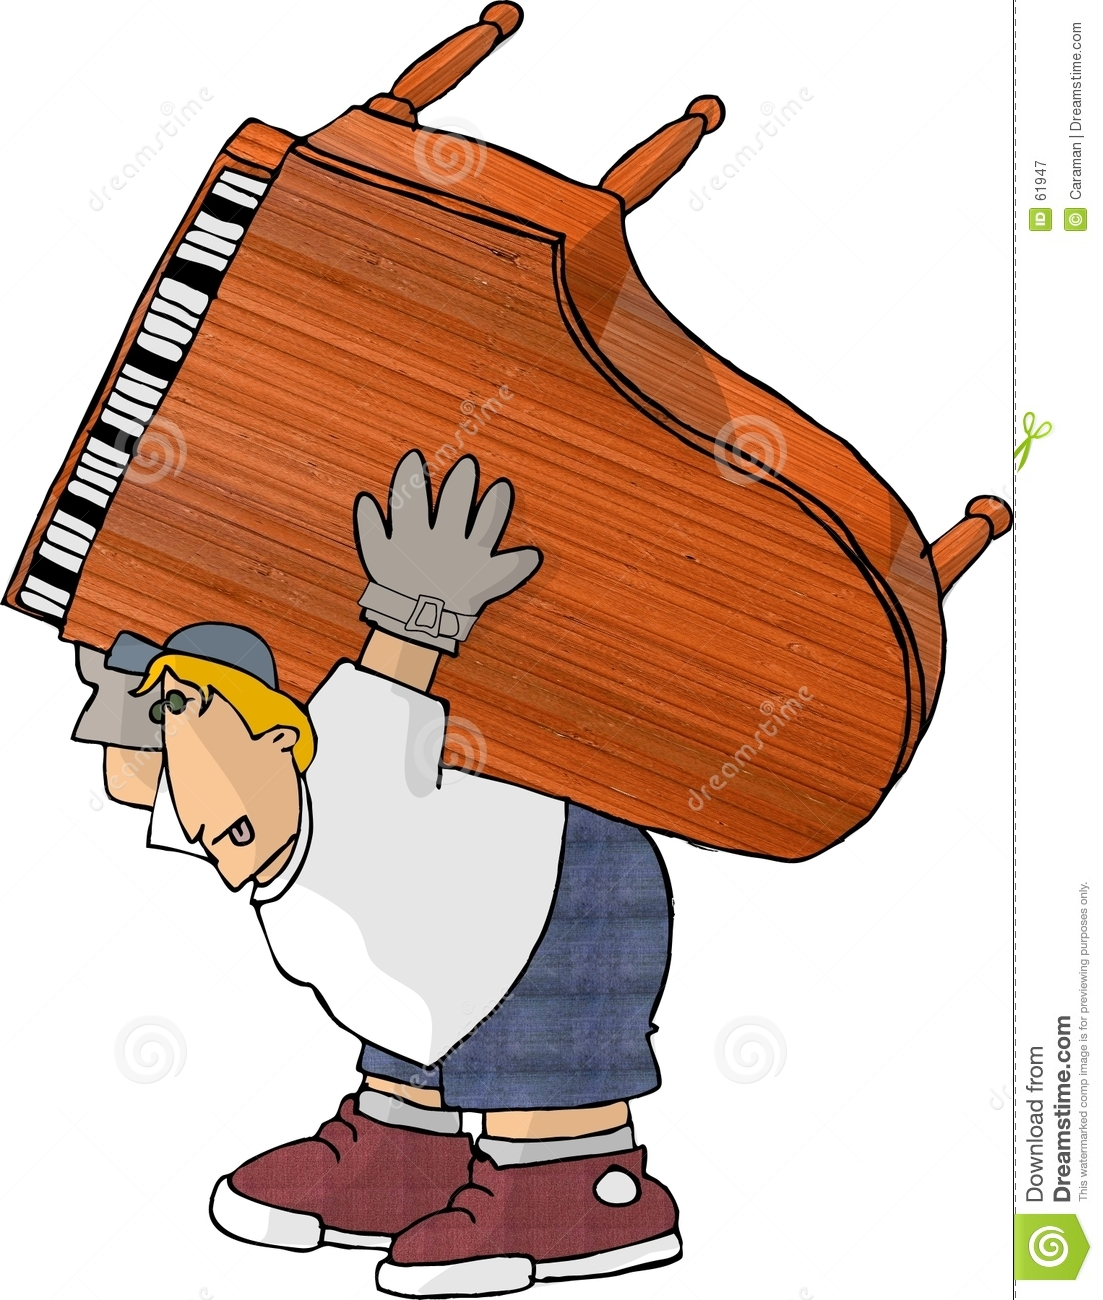 how to move a heavy piano